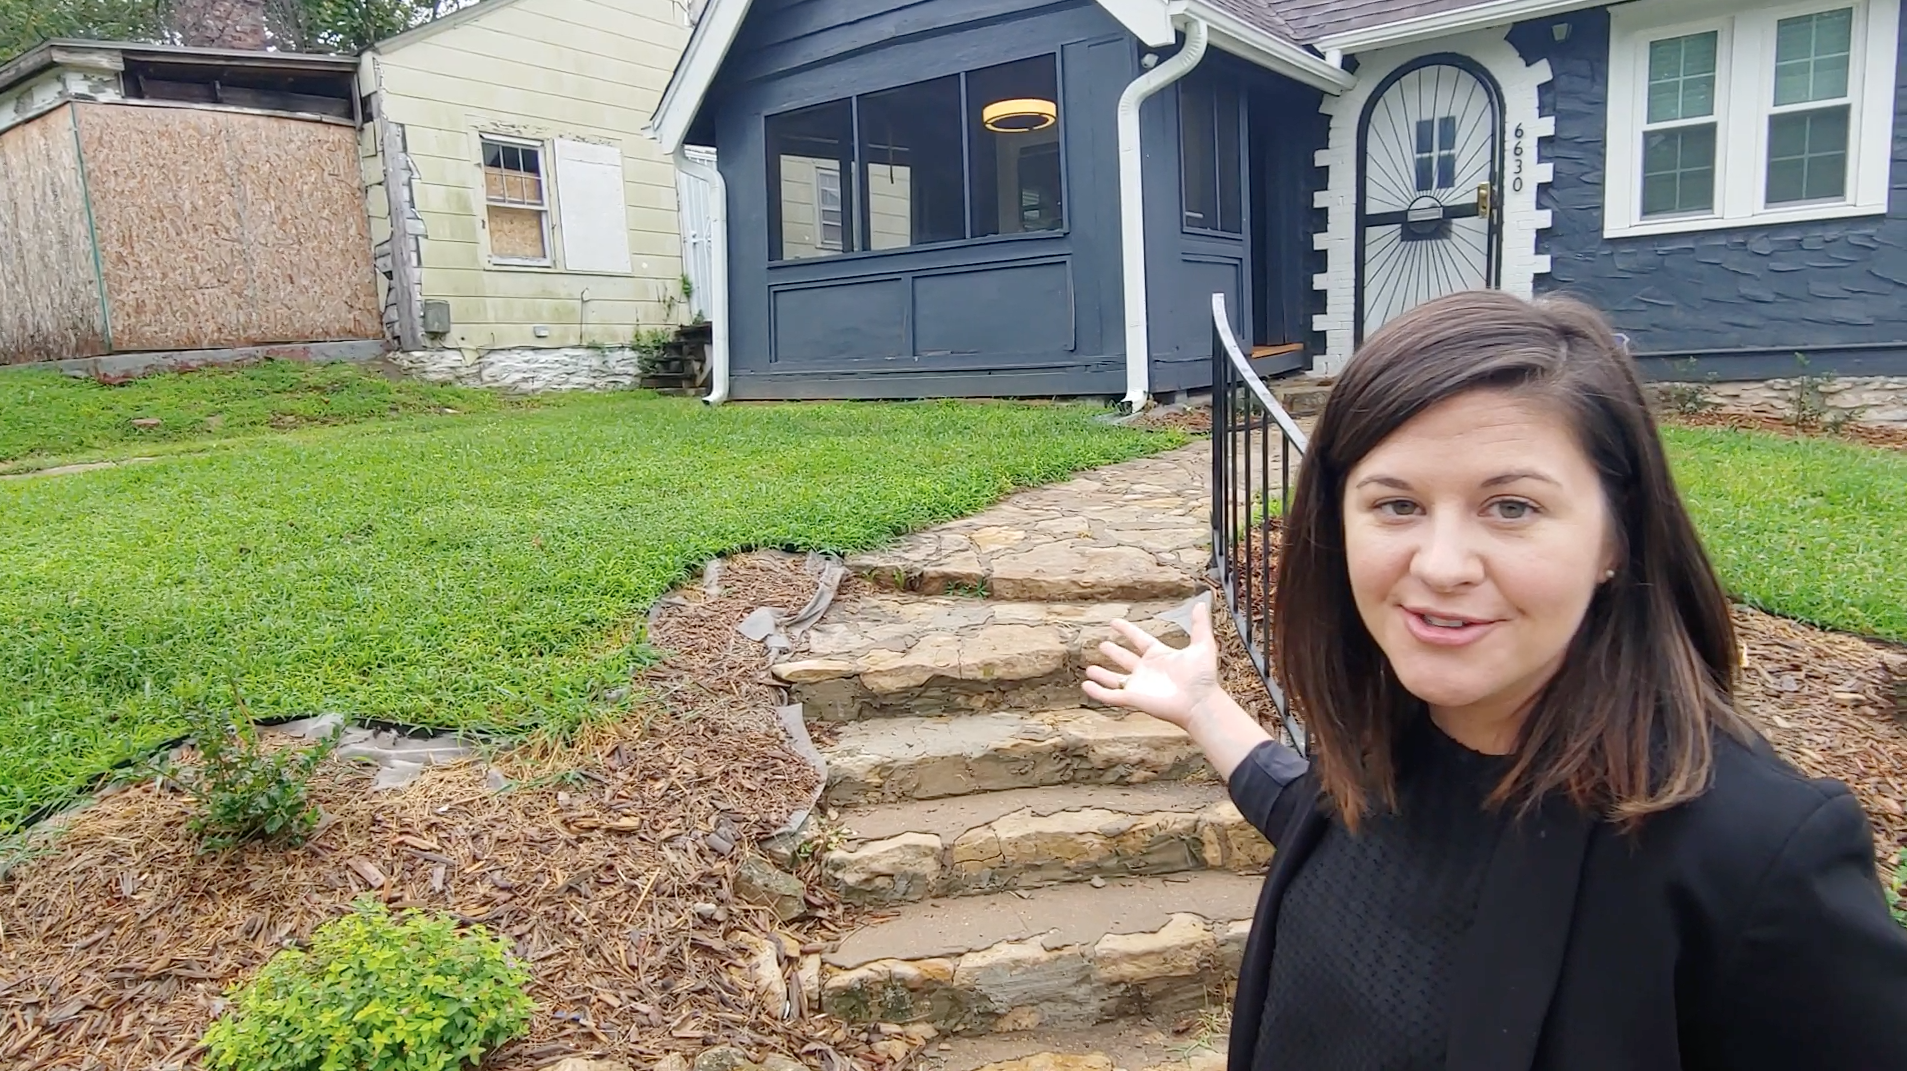 Attorney Anna Berman of Kutak Rock surveys the work rehabber Katie Chepulis has done with the help of Legal Aid of Western Missouri's Adopt-A-Neighborhood program.